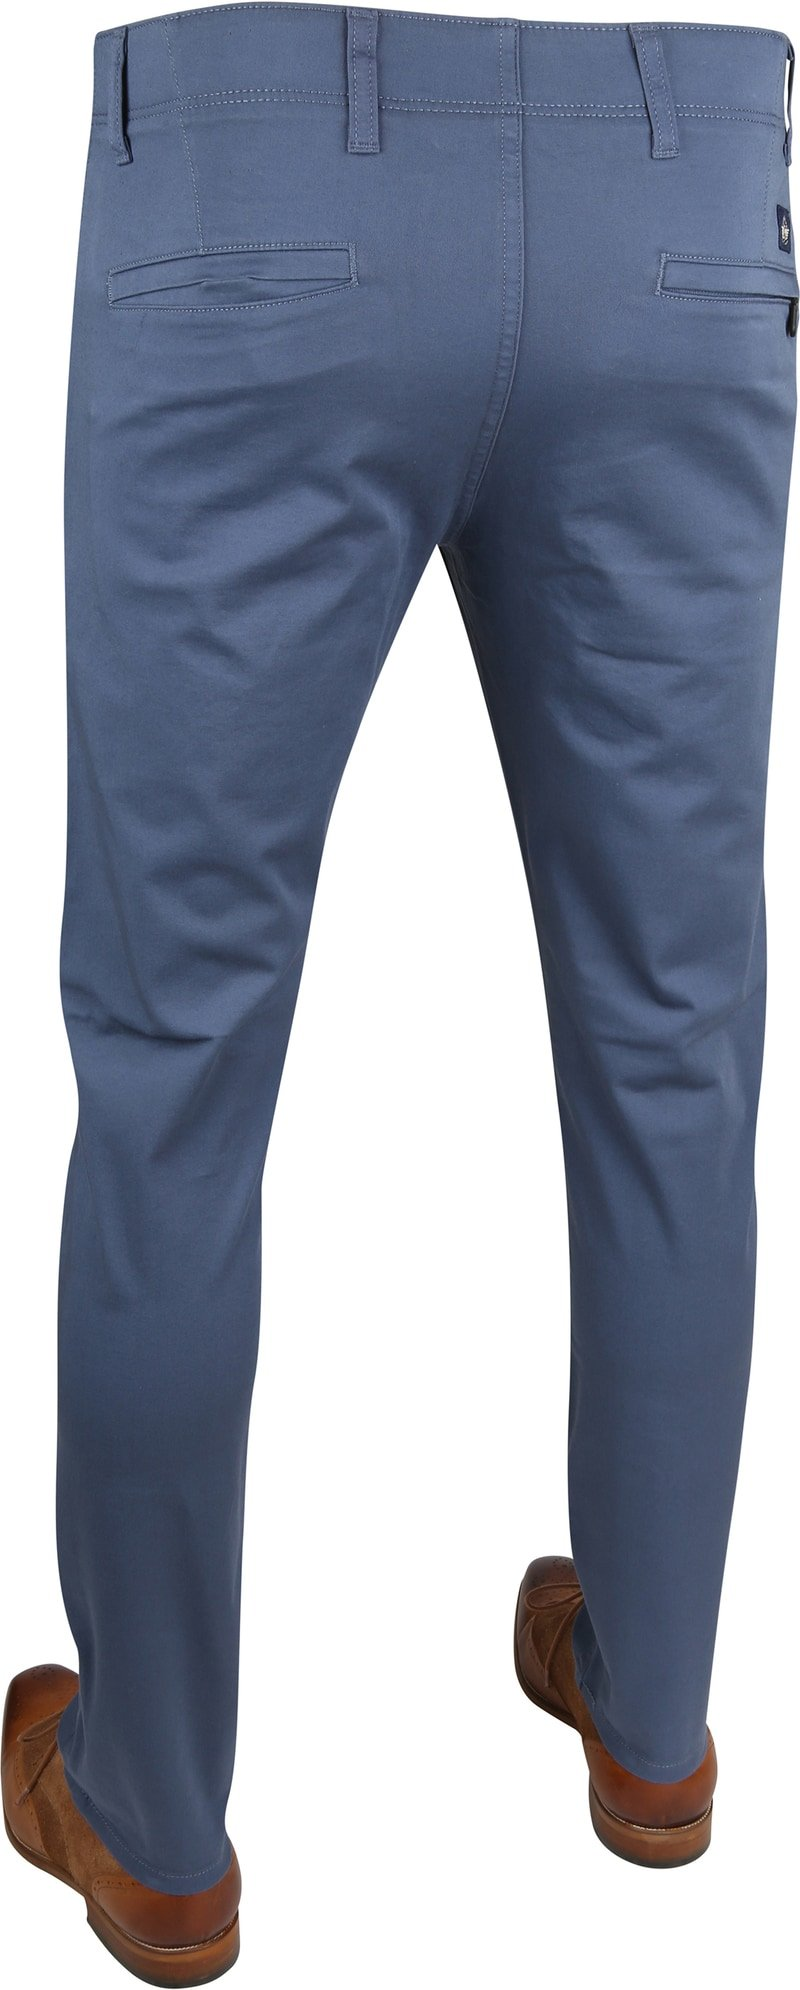 Dockers Alpha Skinny Chino 360 Flex Blue photo 2